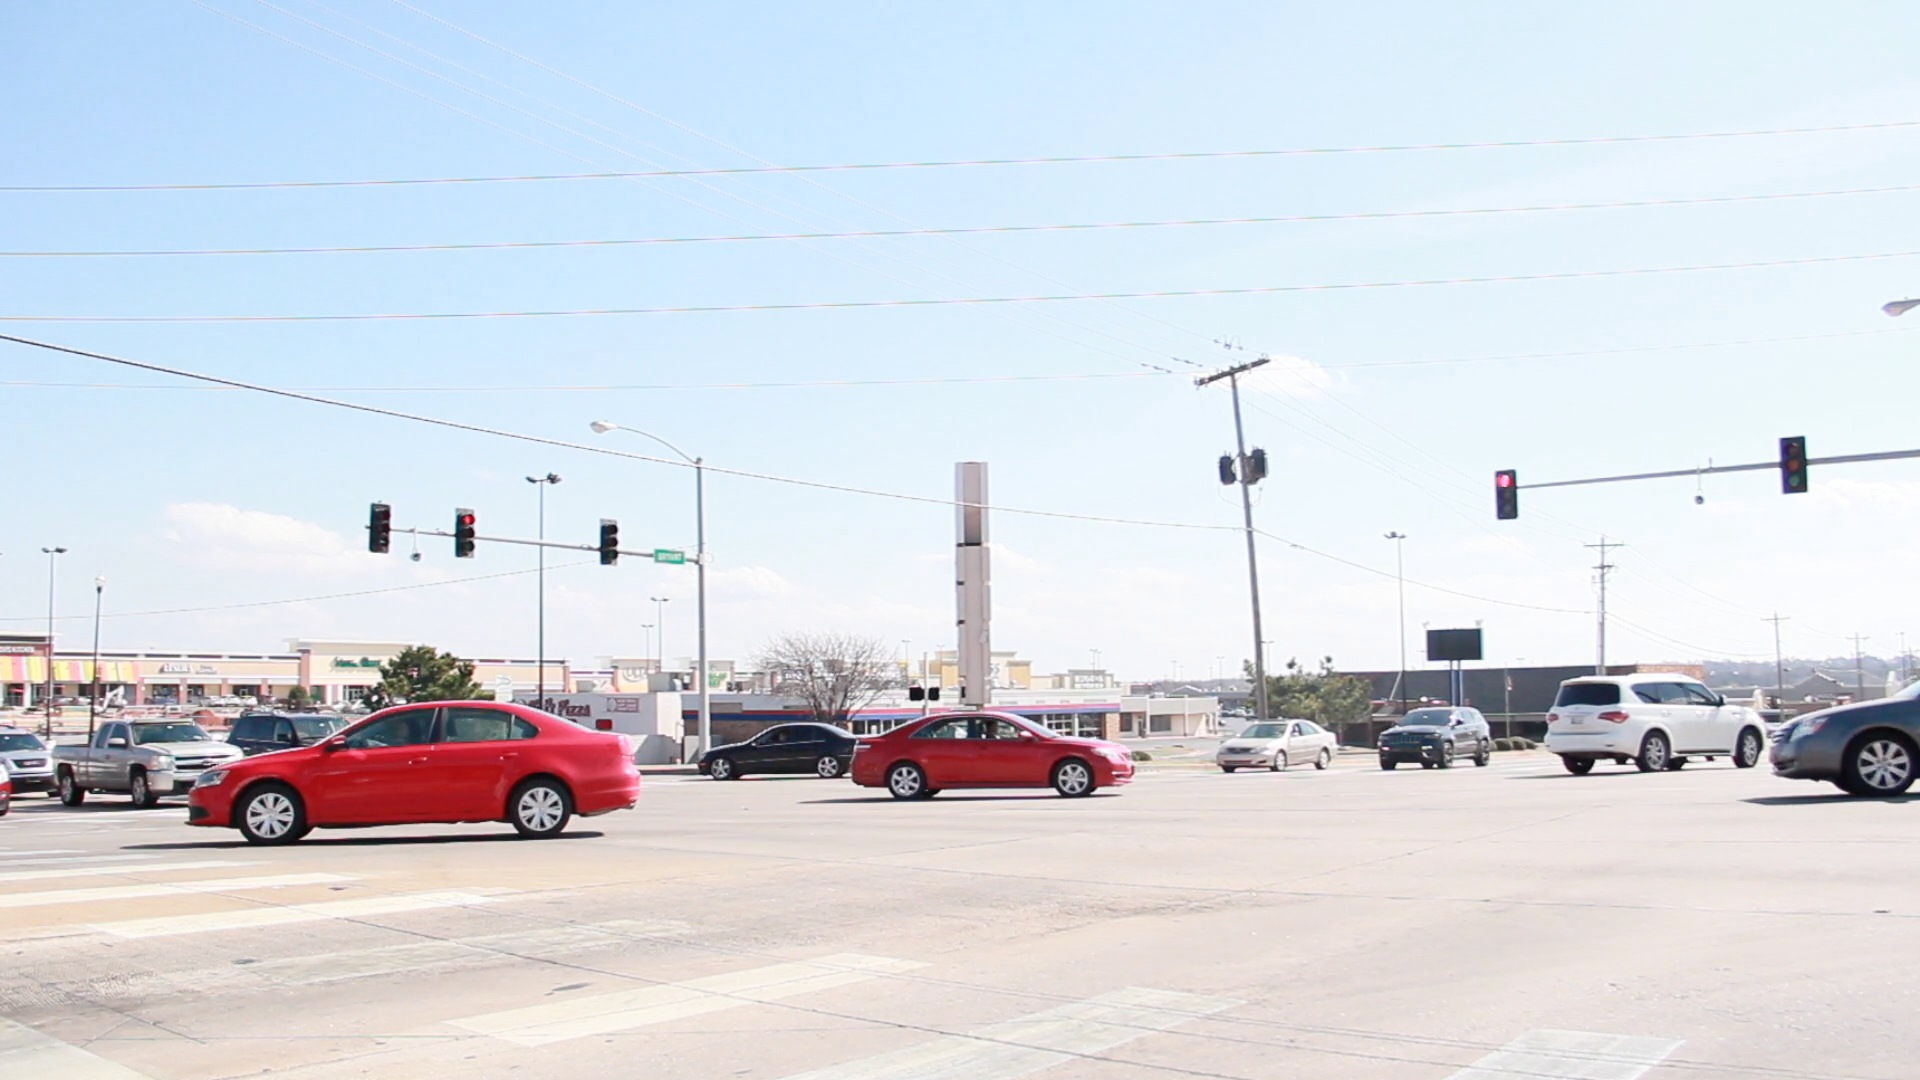 Survey Finds 2nd and Bryant as Busiest Intersection